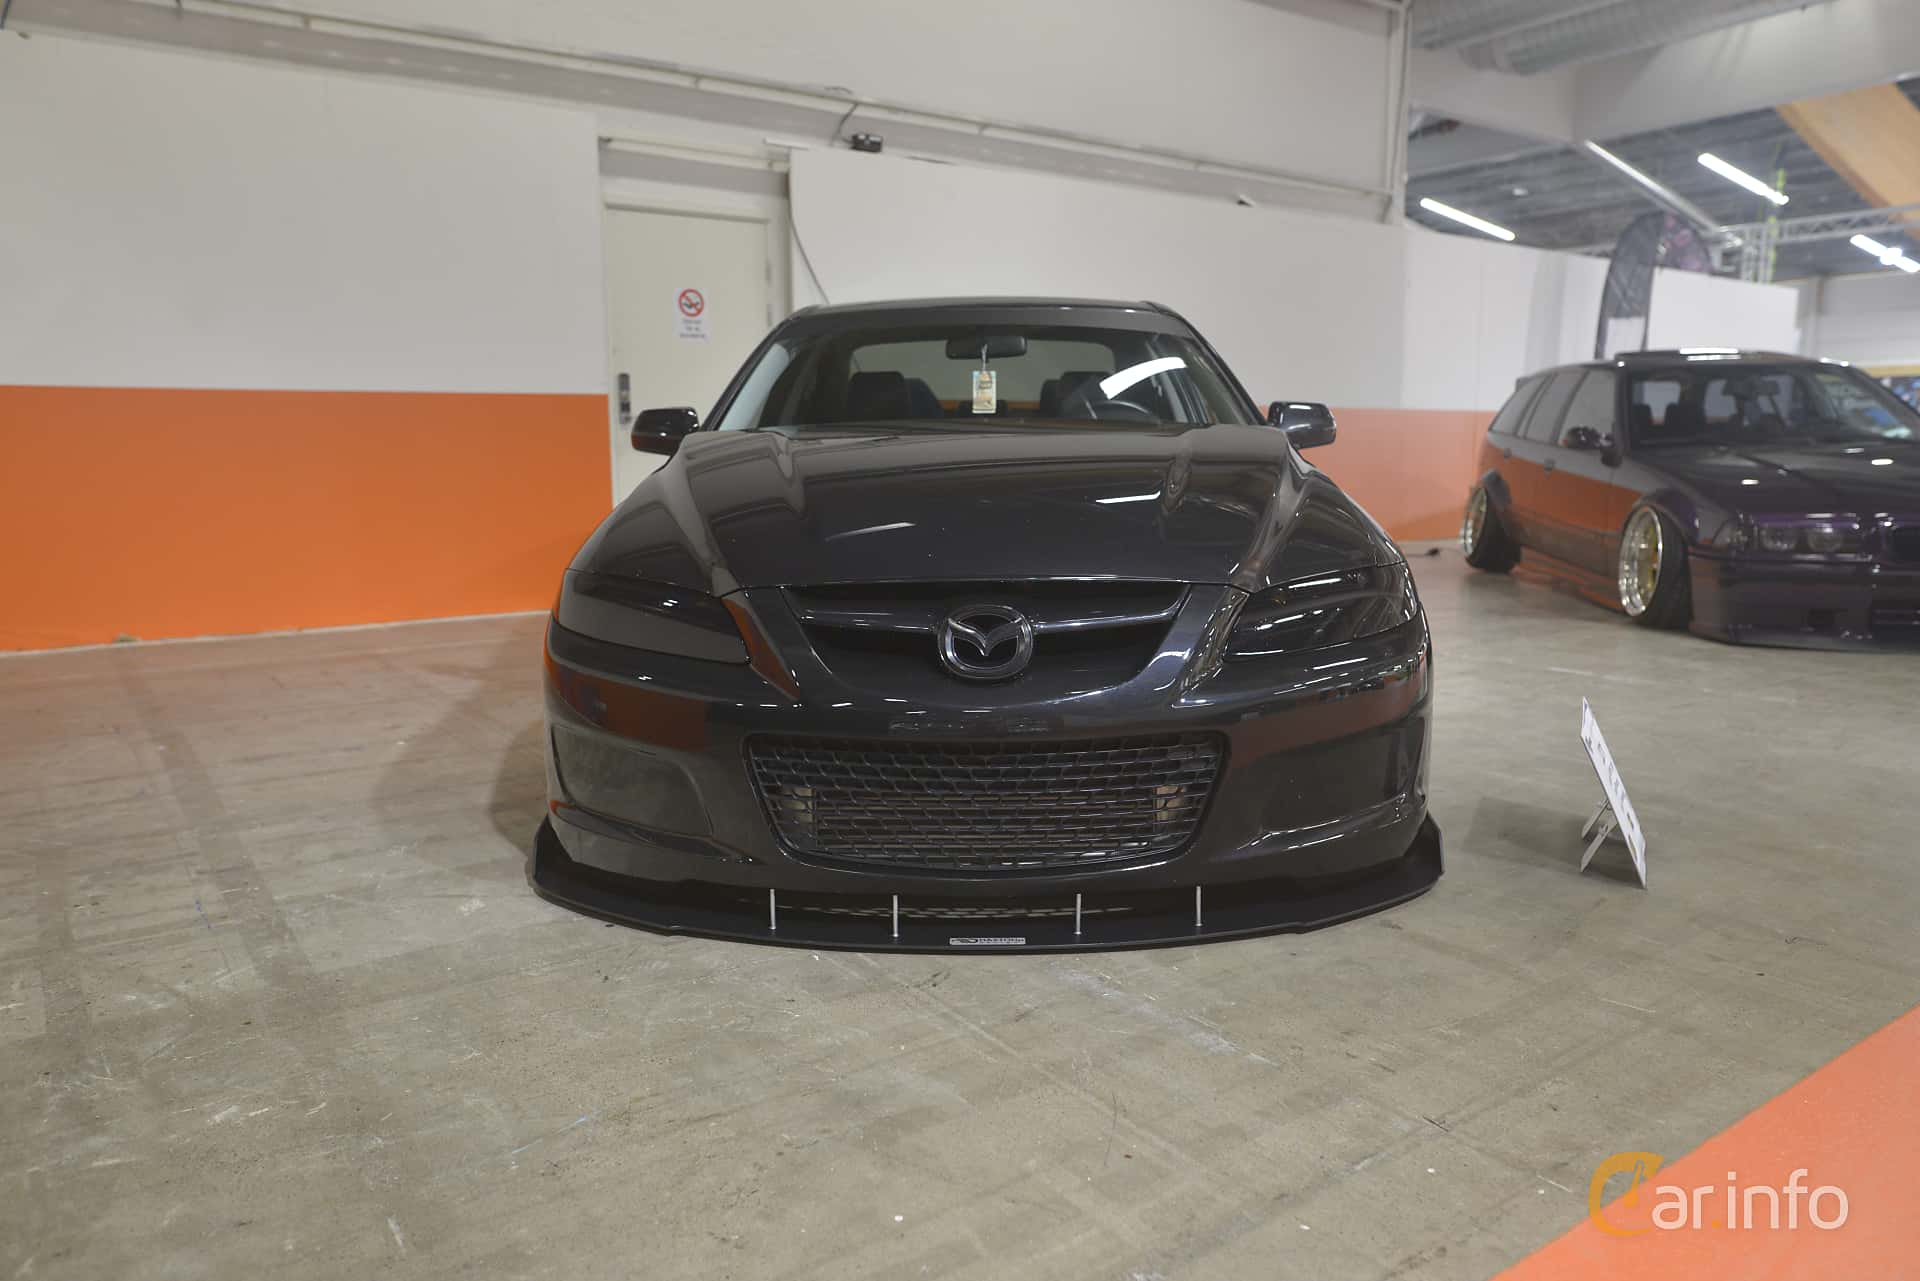 Mazda 6 MPS 2.3 AWD Manual, 260hp, 2006 at Bilsport Performance & Custom Motor Show 2019